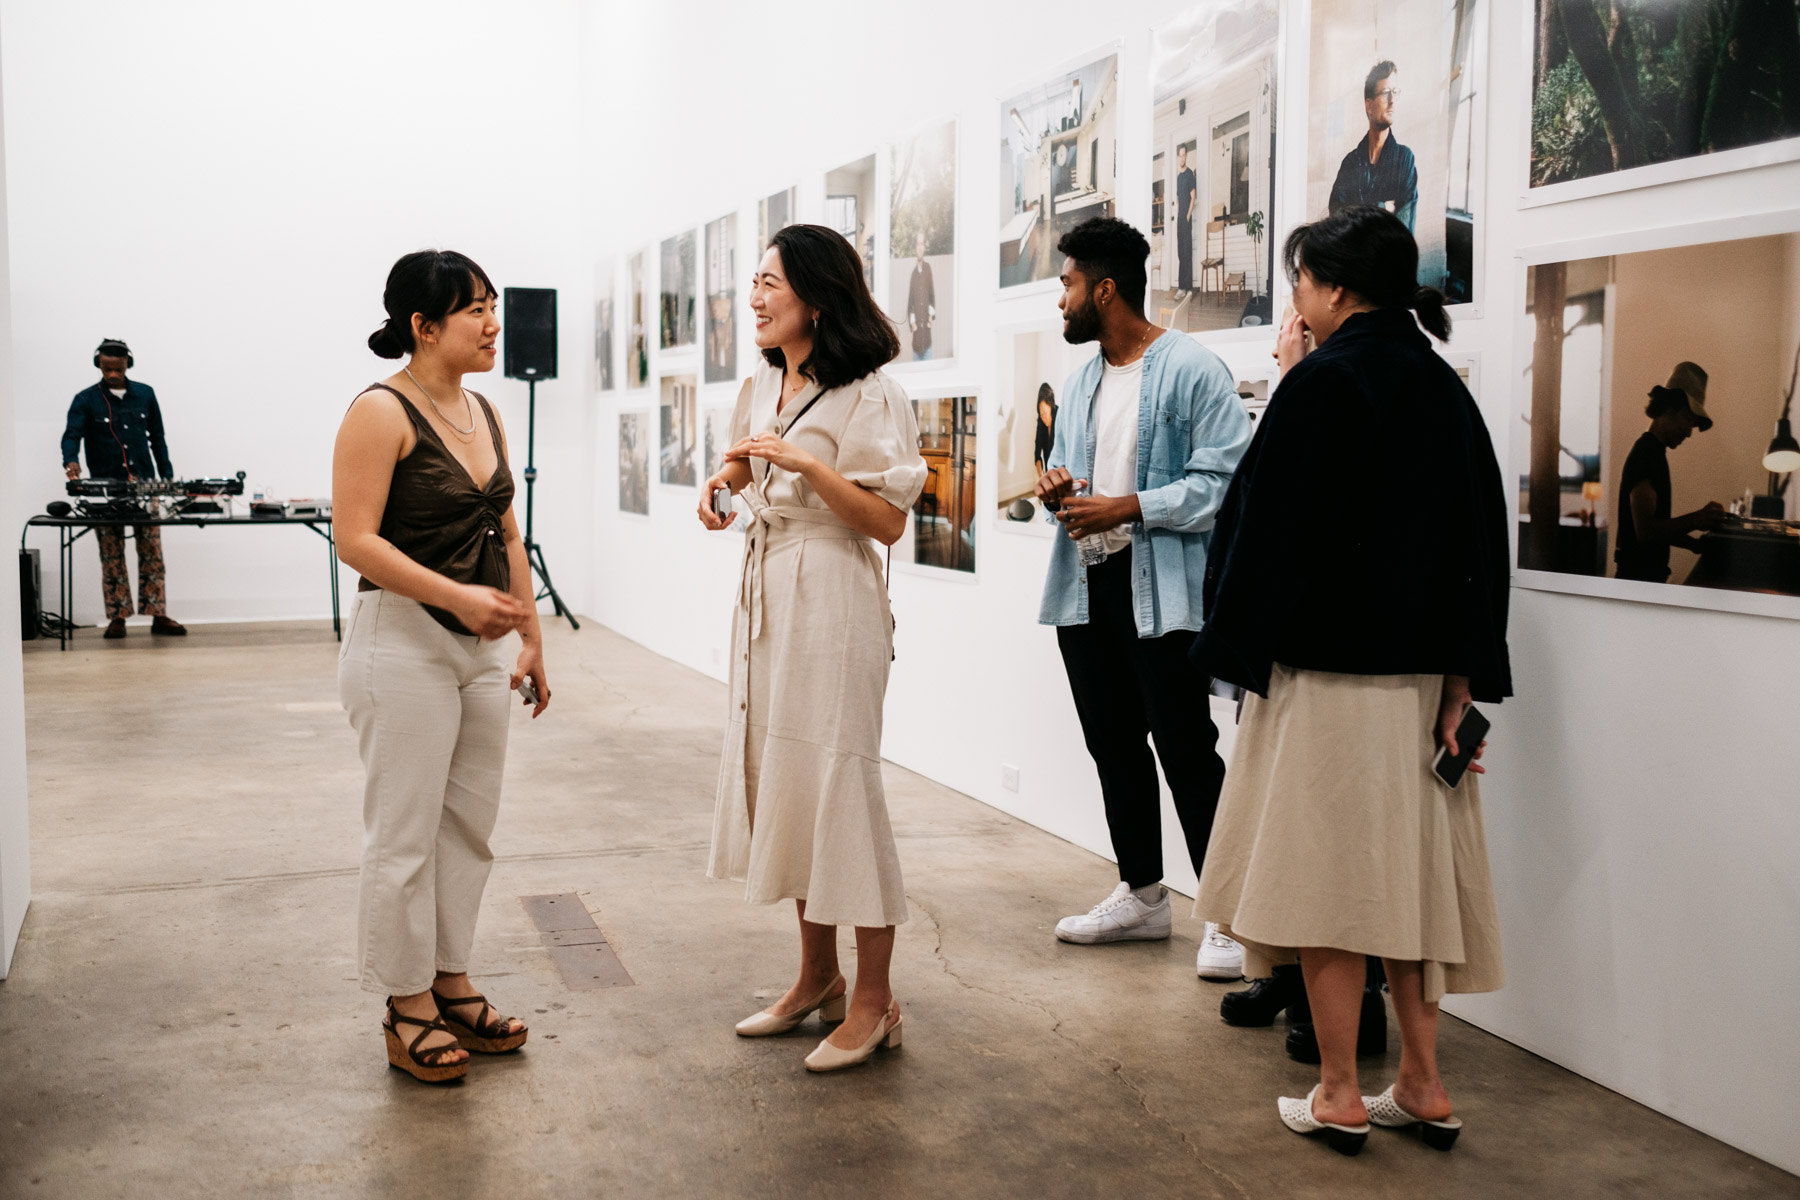 Faculty Department, Faculty Department Vol. 2 Book Launch, Faculty Dept., Justin Chung, Kodak, Le Labo Fragrances, Los Angeles, Madre Mezcal, Studio Faculty, Woon Kitchen